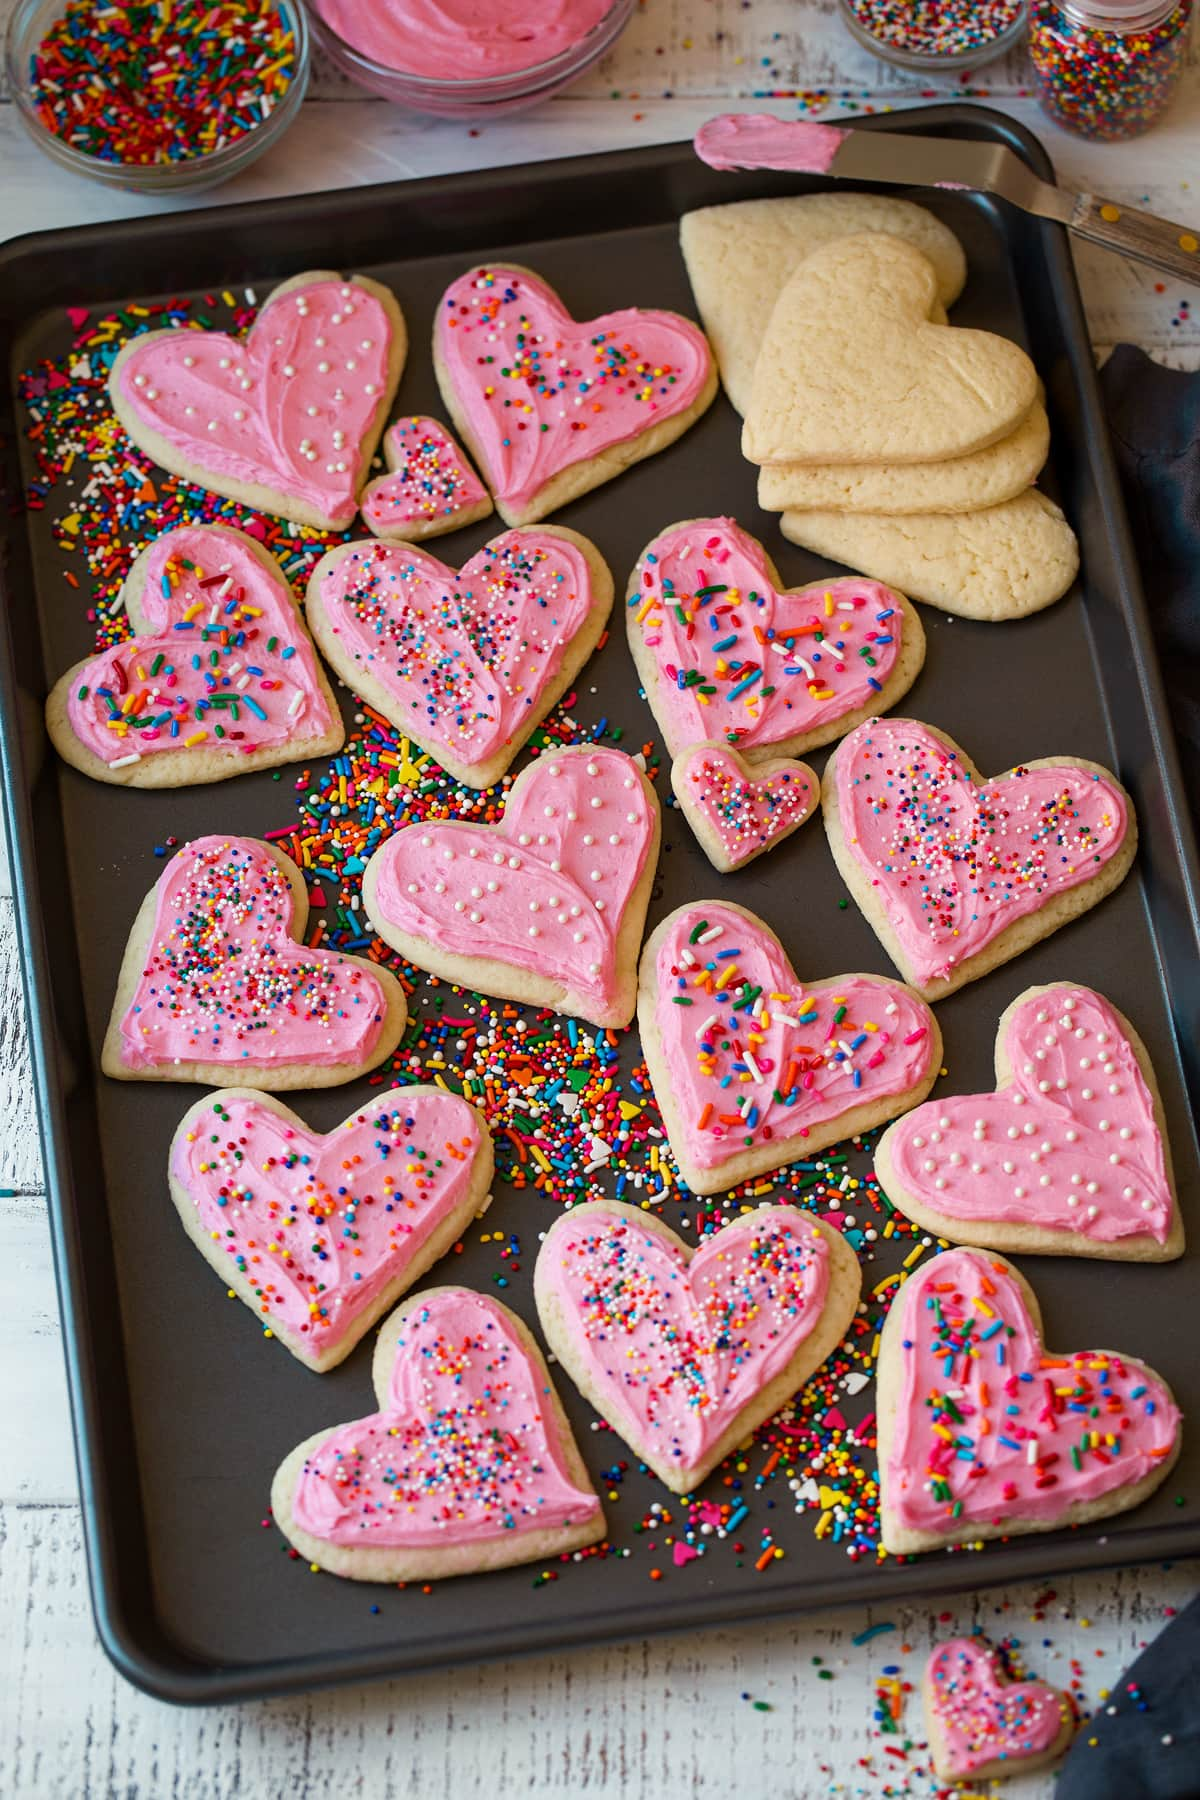 Cutout sugar cookies in heart shapes on a baking sheet shown frosted with sprinkles.